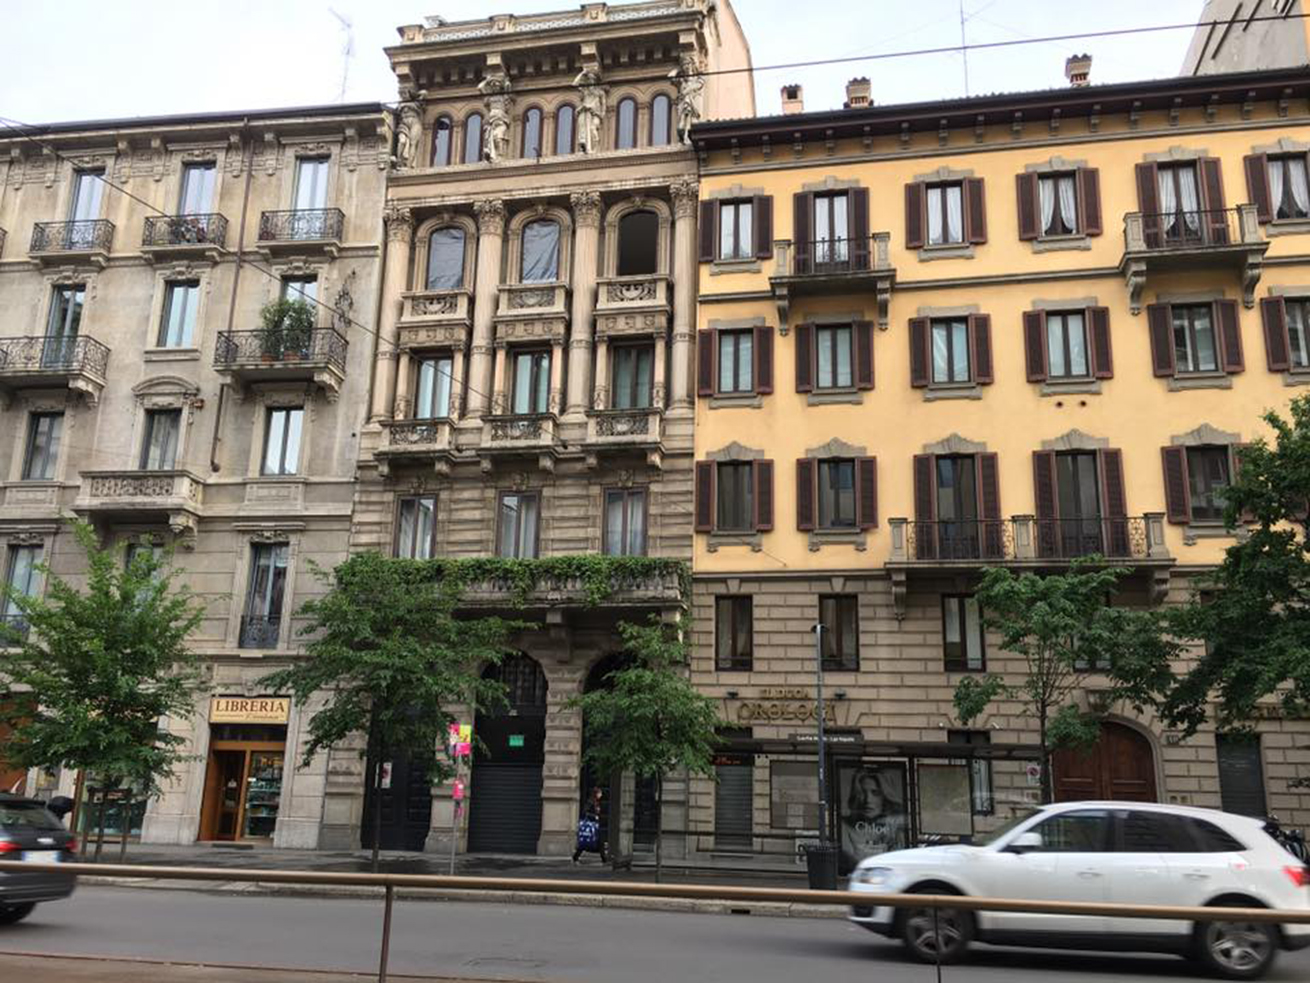 Milan architecture, Italian architecture, things to see in Milan, things to do in Milan